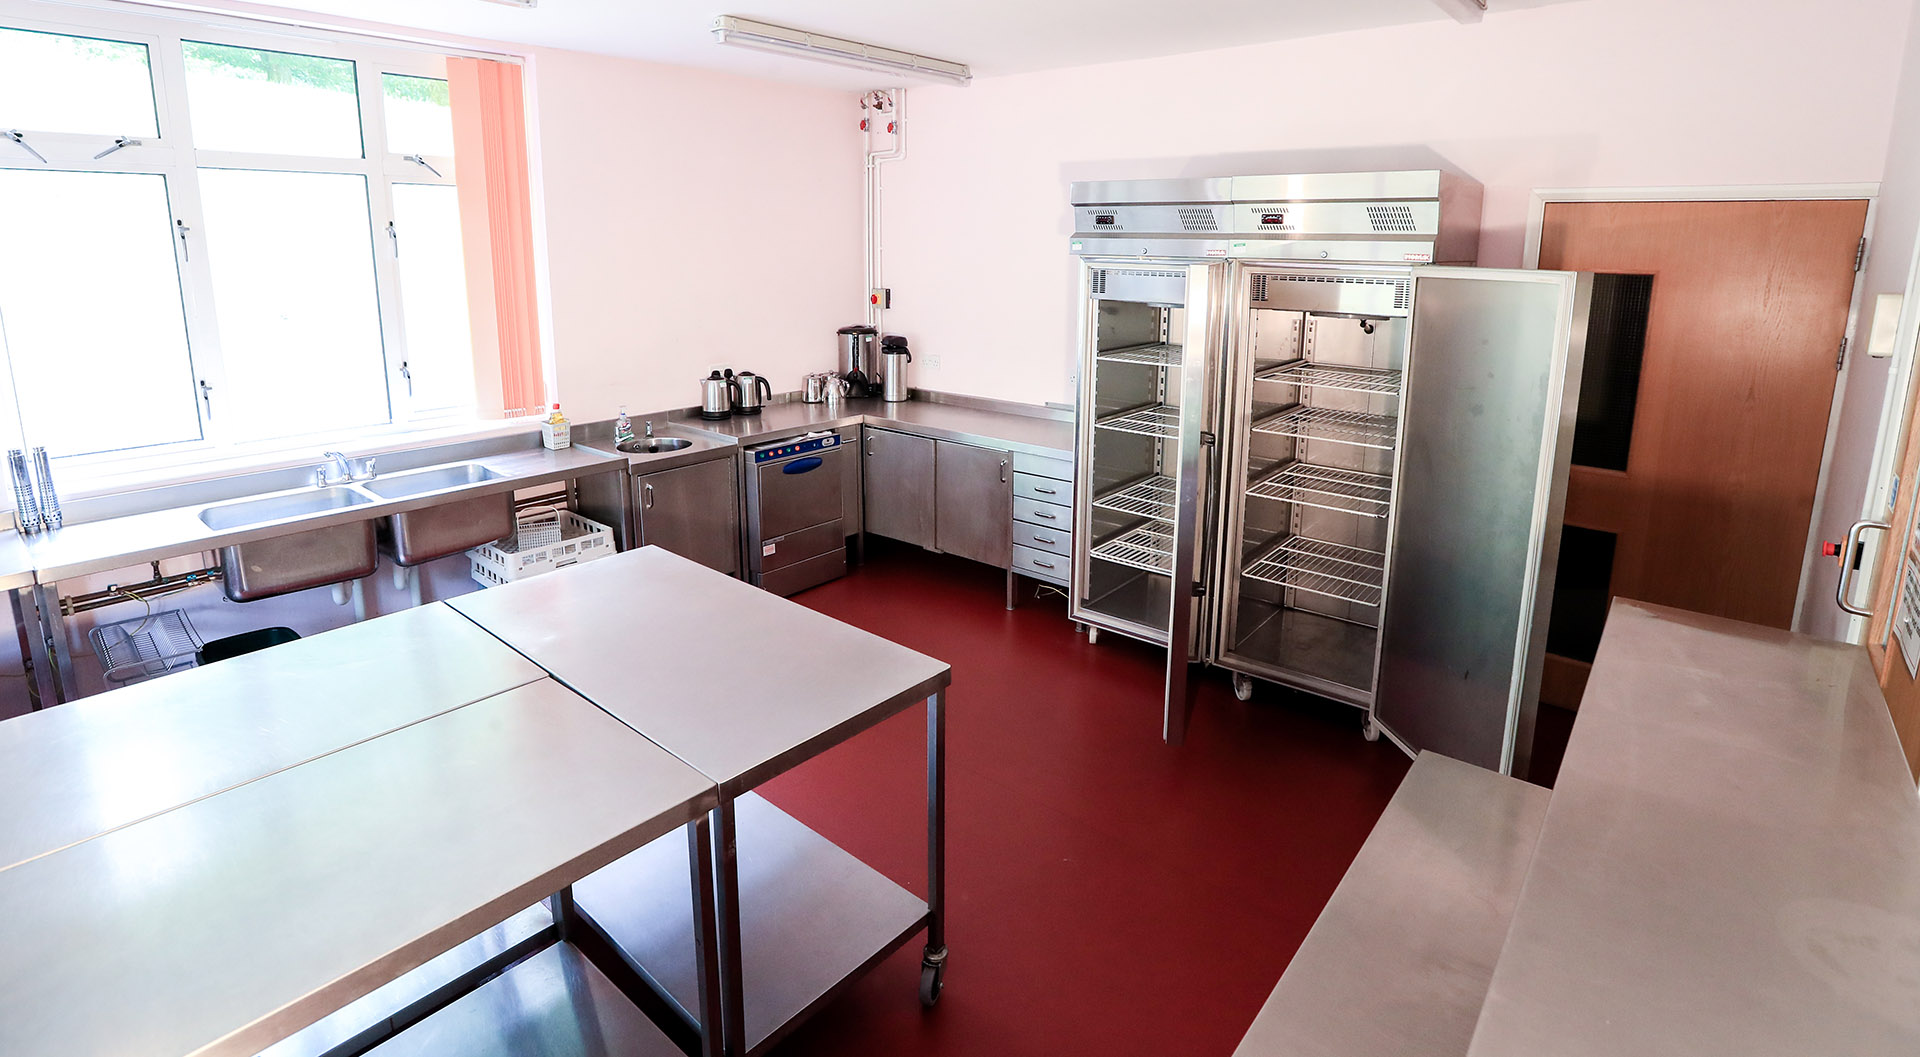 Commercial grade kitchen for hire near Ipswich, Suffolk